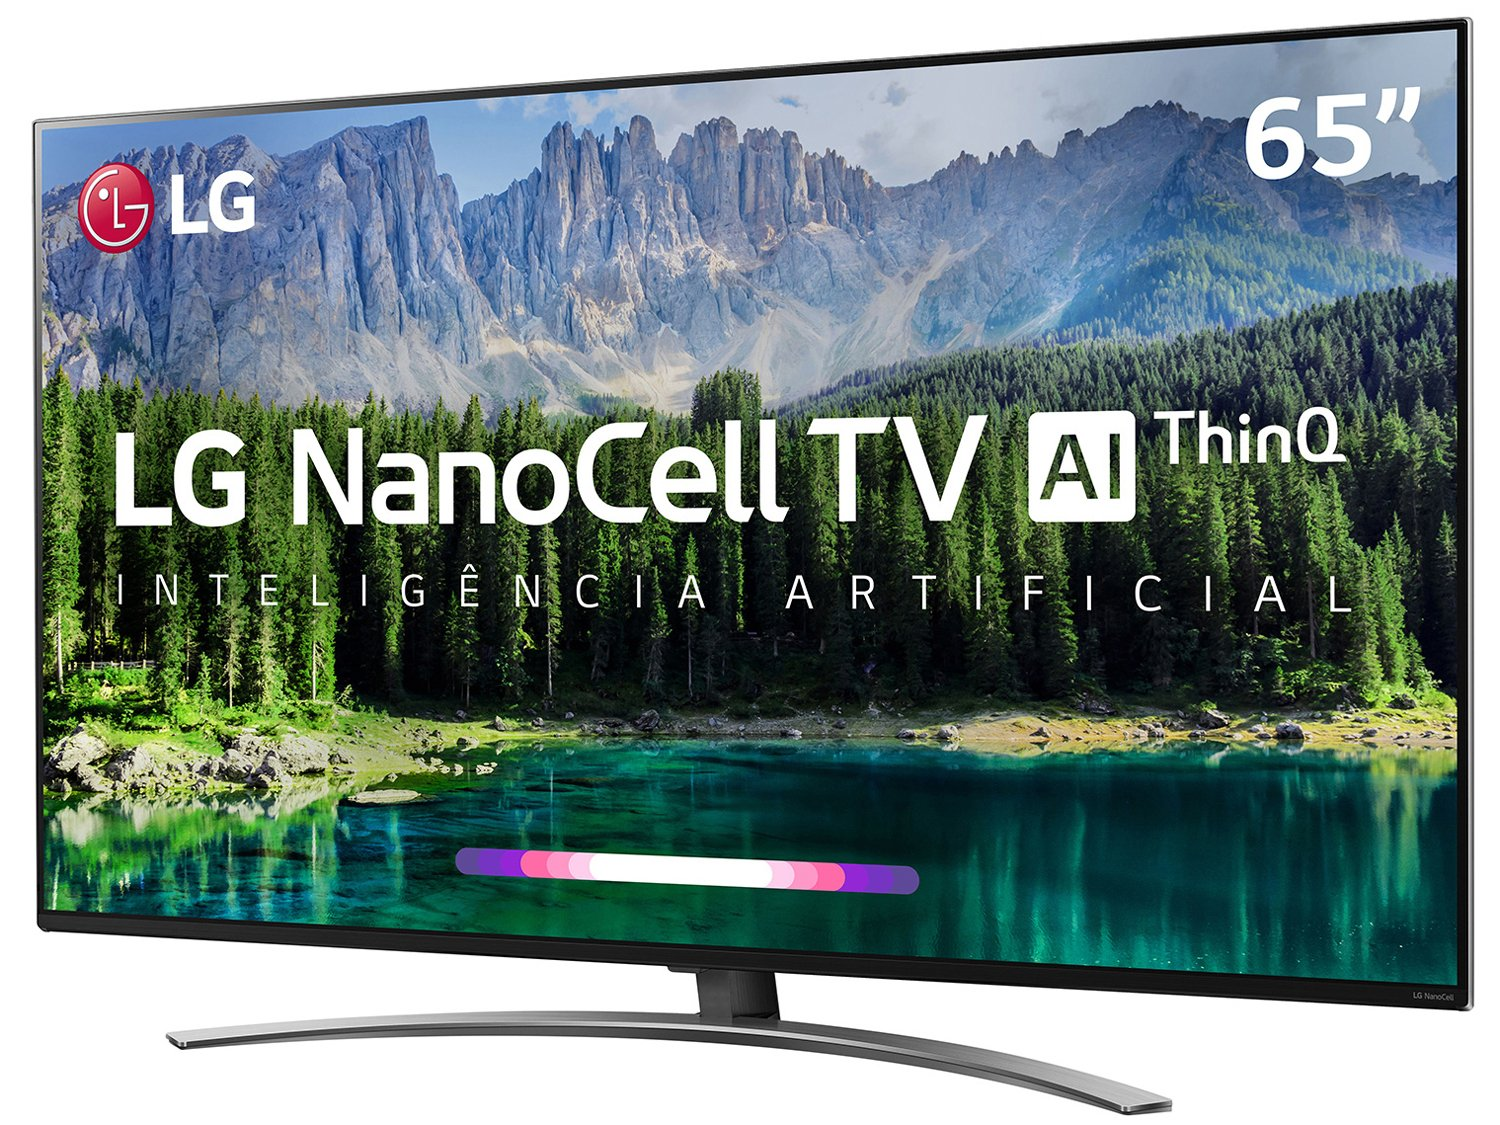 "Smart TV LED 65"" UHD 4K LG 65SM8600PSA NanoCell, ThinQ AI Inteligência Artificial IoT, IPS, HDR, Dolby Vision, Dolby Atmos e Controle Smart Magic - 3"